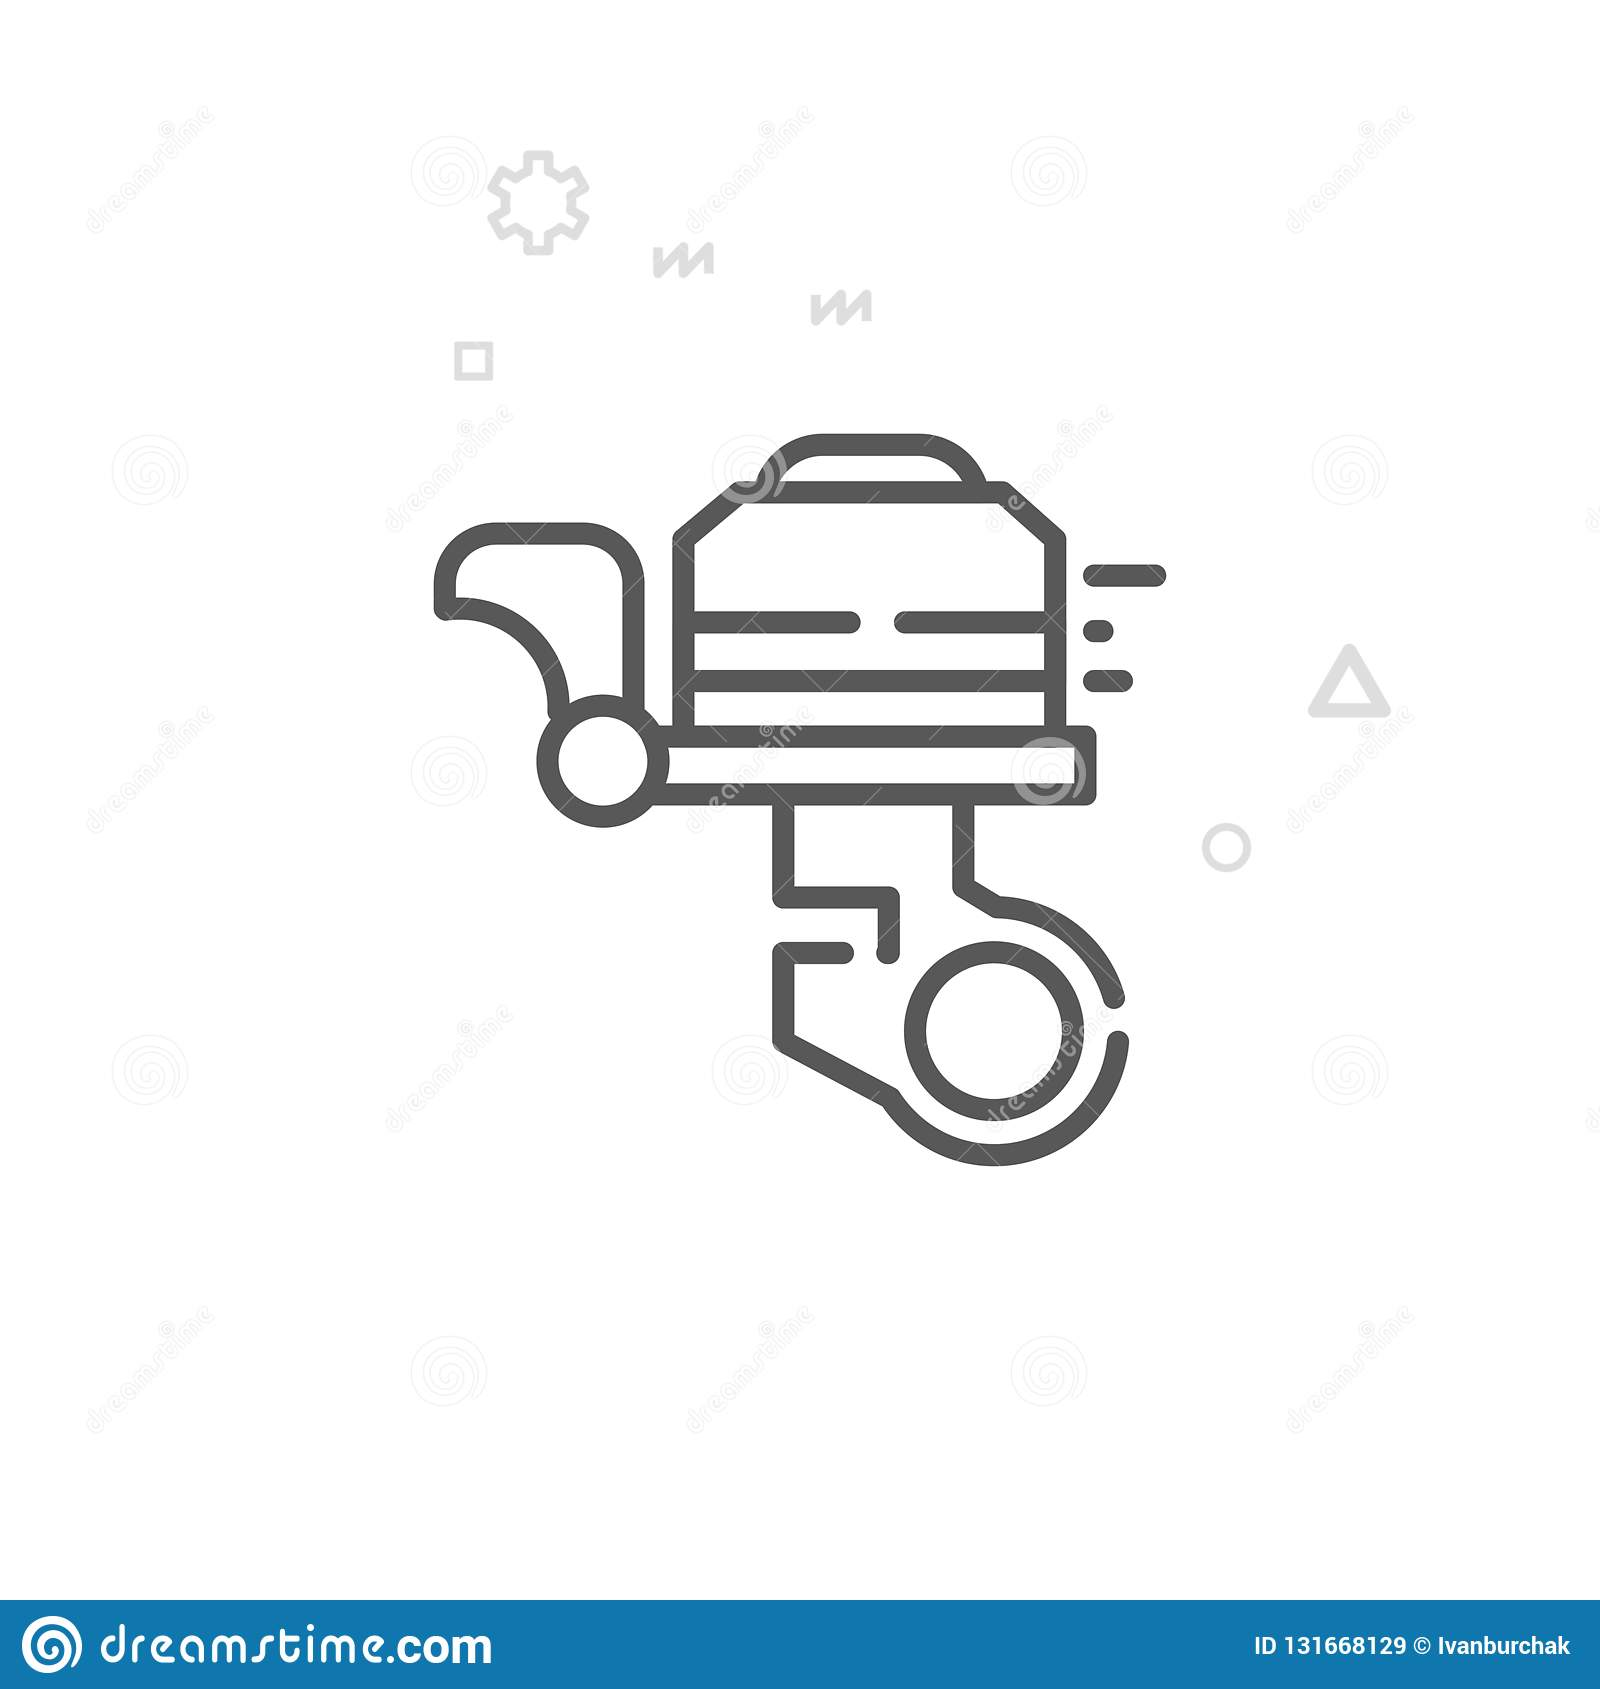 Bike or Bicycle Bell Vector Line Icon, Symbol, Pictogram, Sign. Light Abstract Geometric Background. Editable Stroke